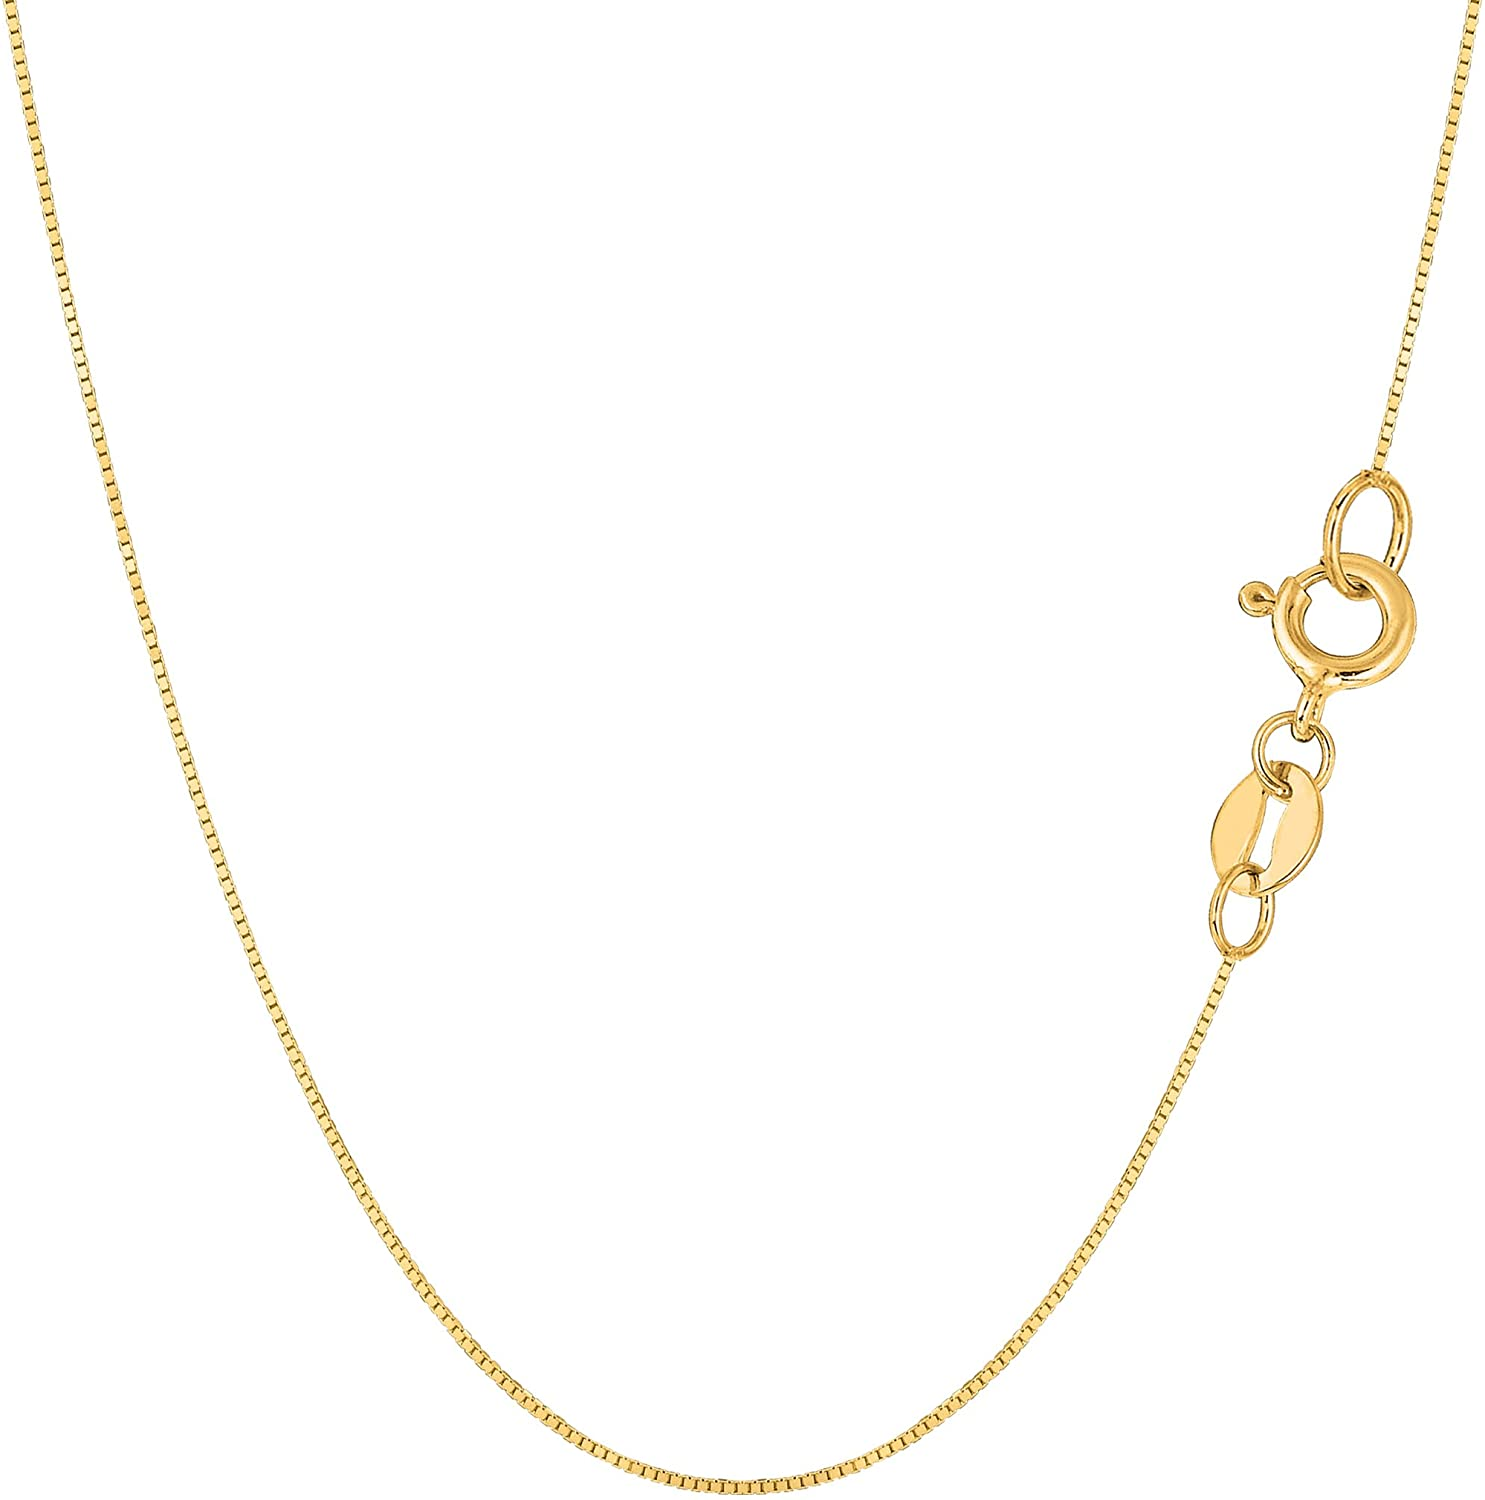 14k Yellow Solid Gold Mirror Box Chain Necklace, 0.6mm